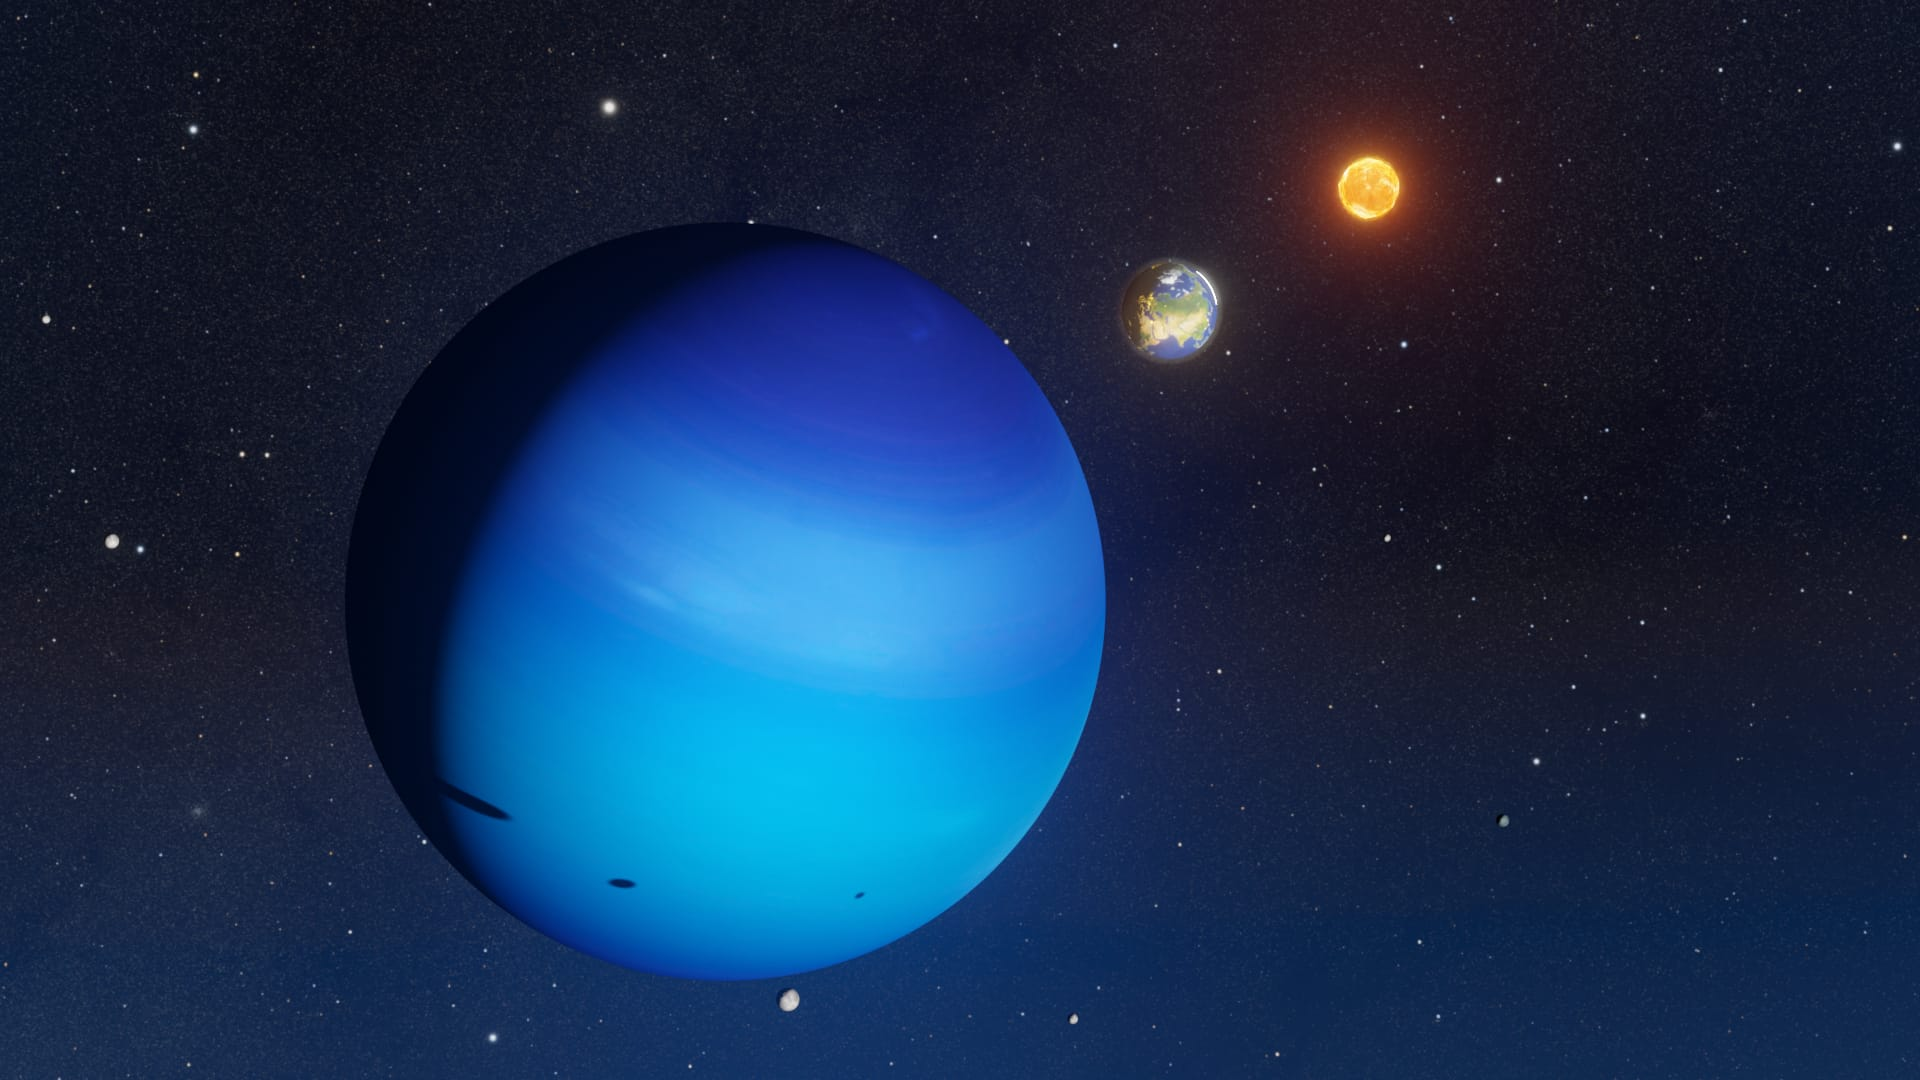 Planet Neptune: Explore the Farthest Planet From the Sun!